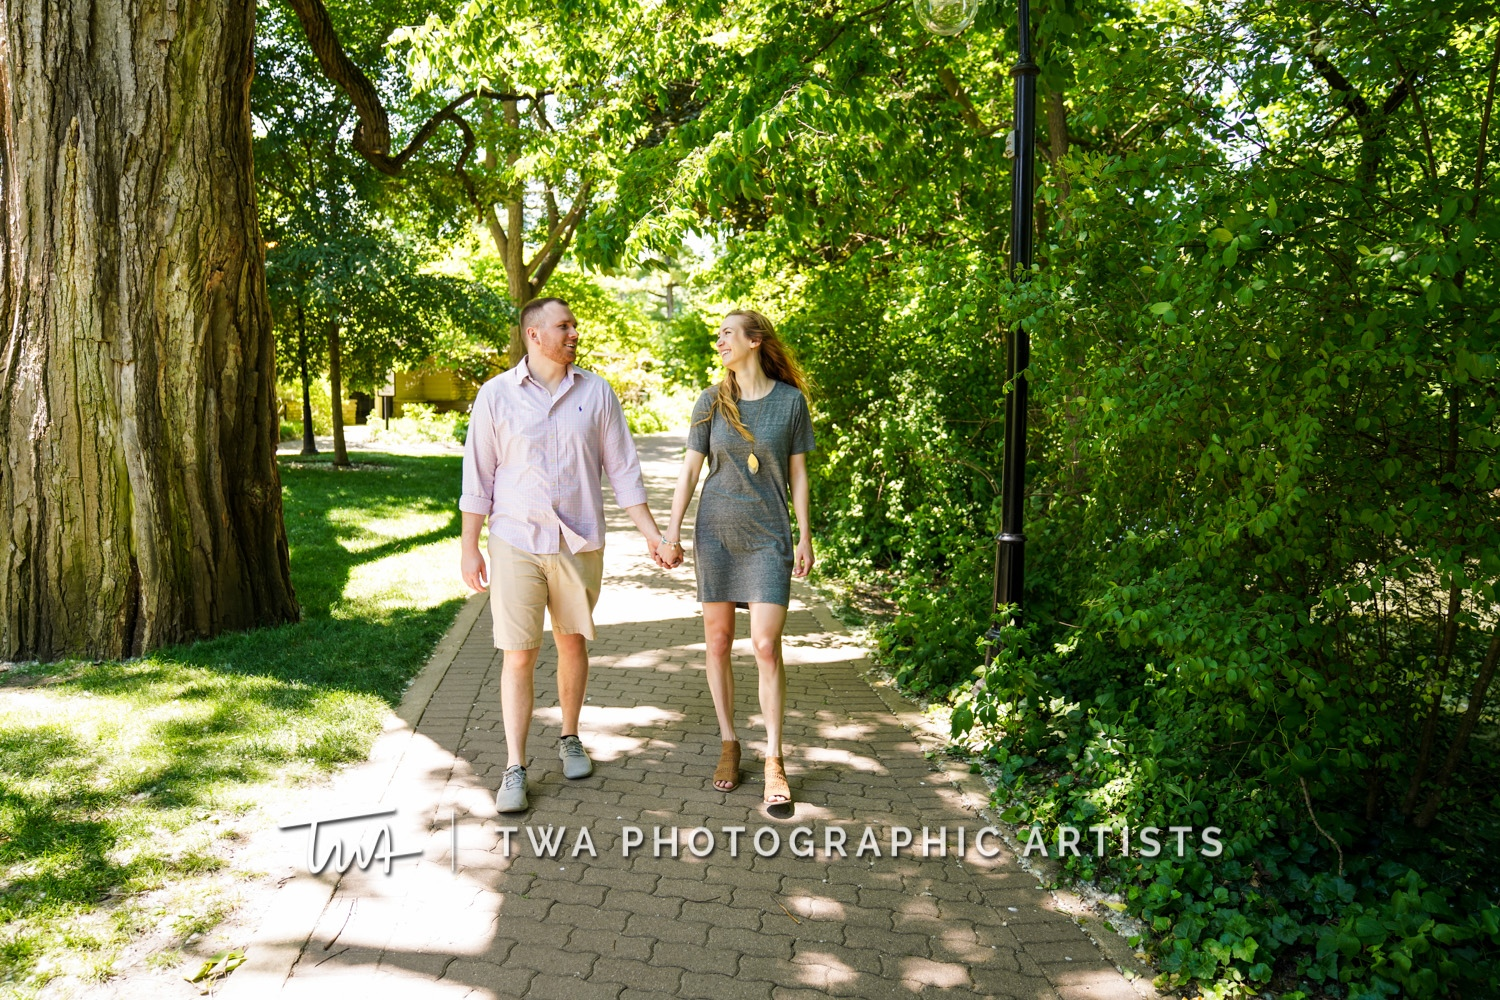 Chicago-Wedding-Photographer-TWA-Photographic-Artists-Naperville-Riverwalk_Van-Dellen_Fox_JC-034